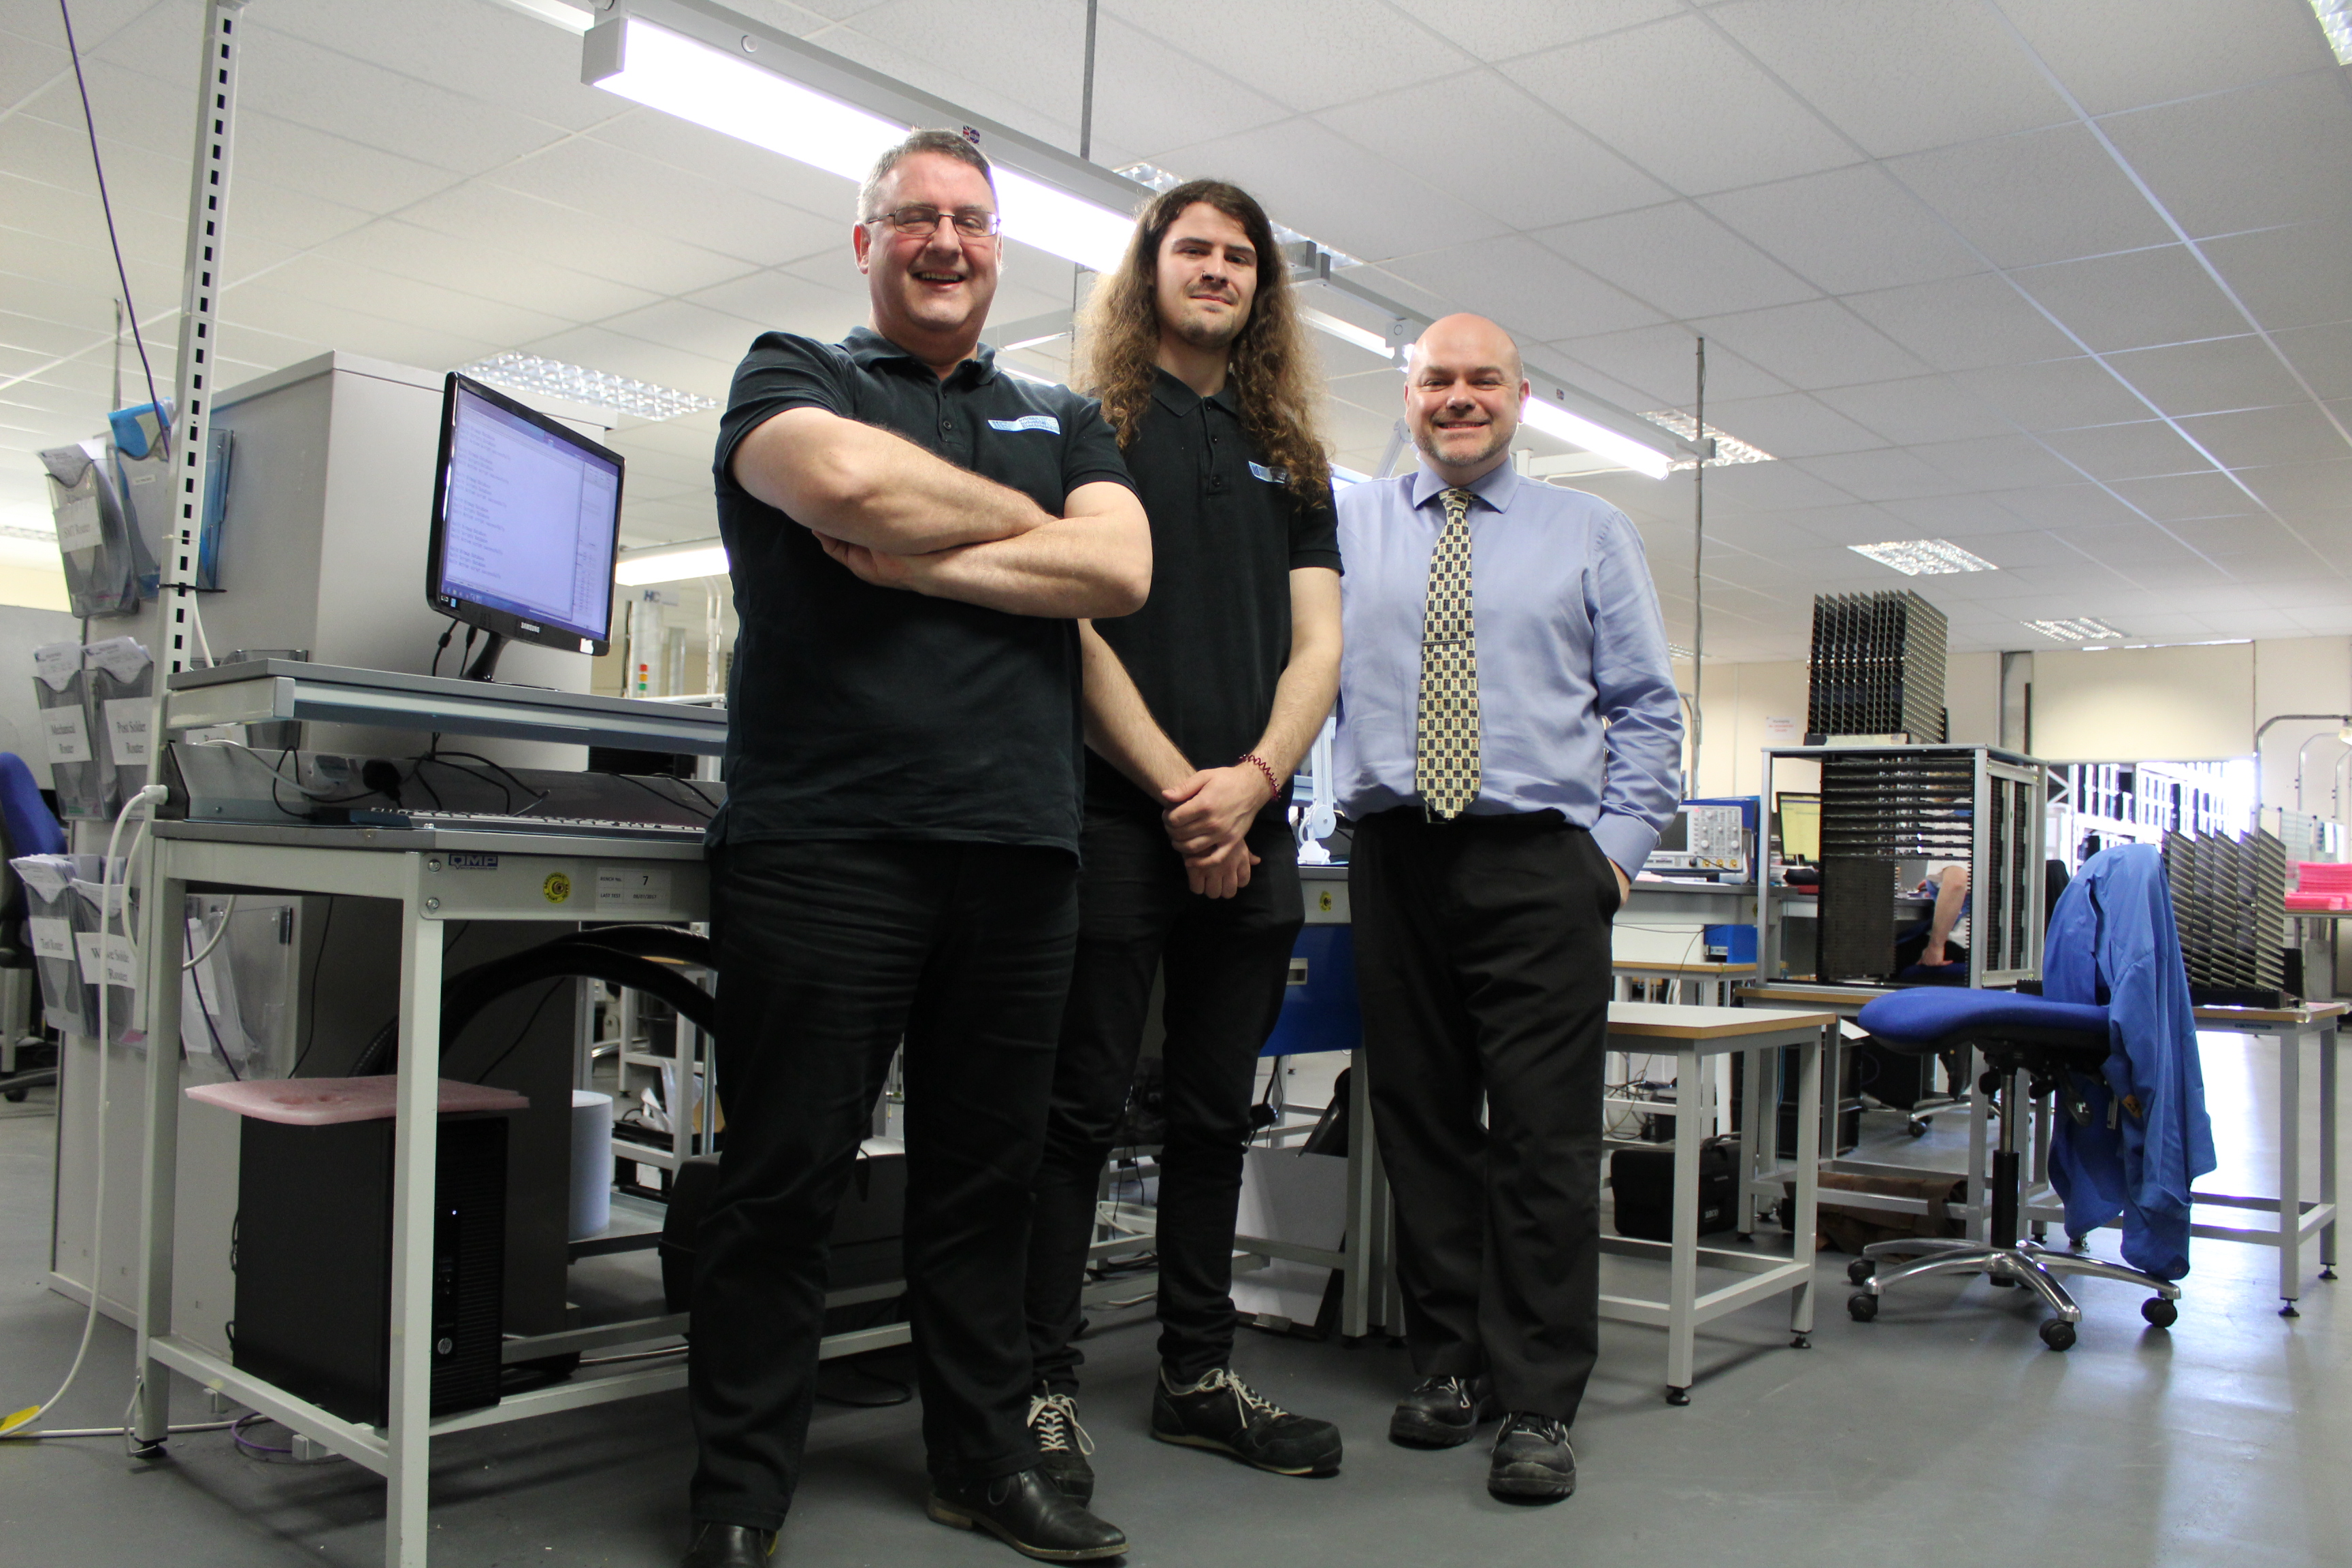 Hindley Circuits Makes Second Acquisition What Is A Pcb Every Gadget And Electronics Enthusiast Should Of Cramlington The Assembly Services Specialist Has Made Its In Matter Months